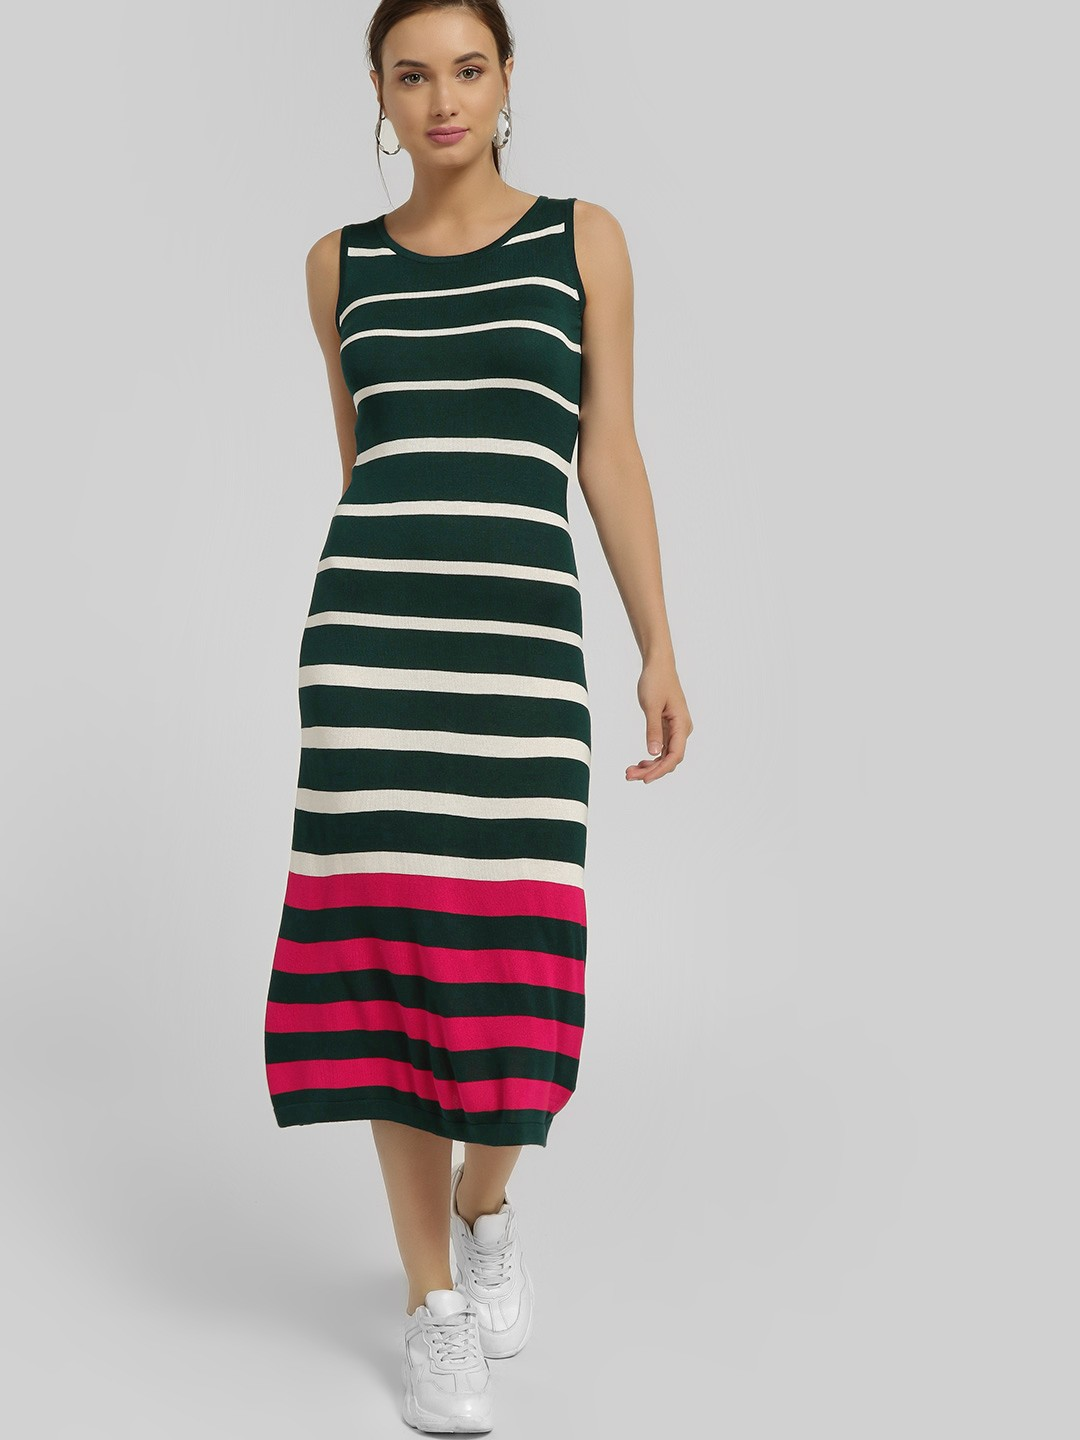 SCULLERS FOR HER Green Horizontal Stripe Midi Dress 1